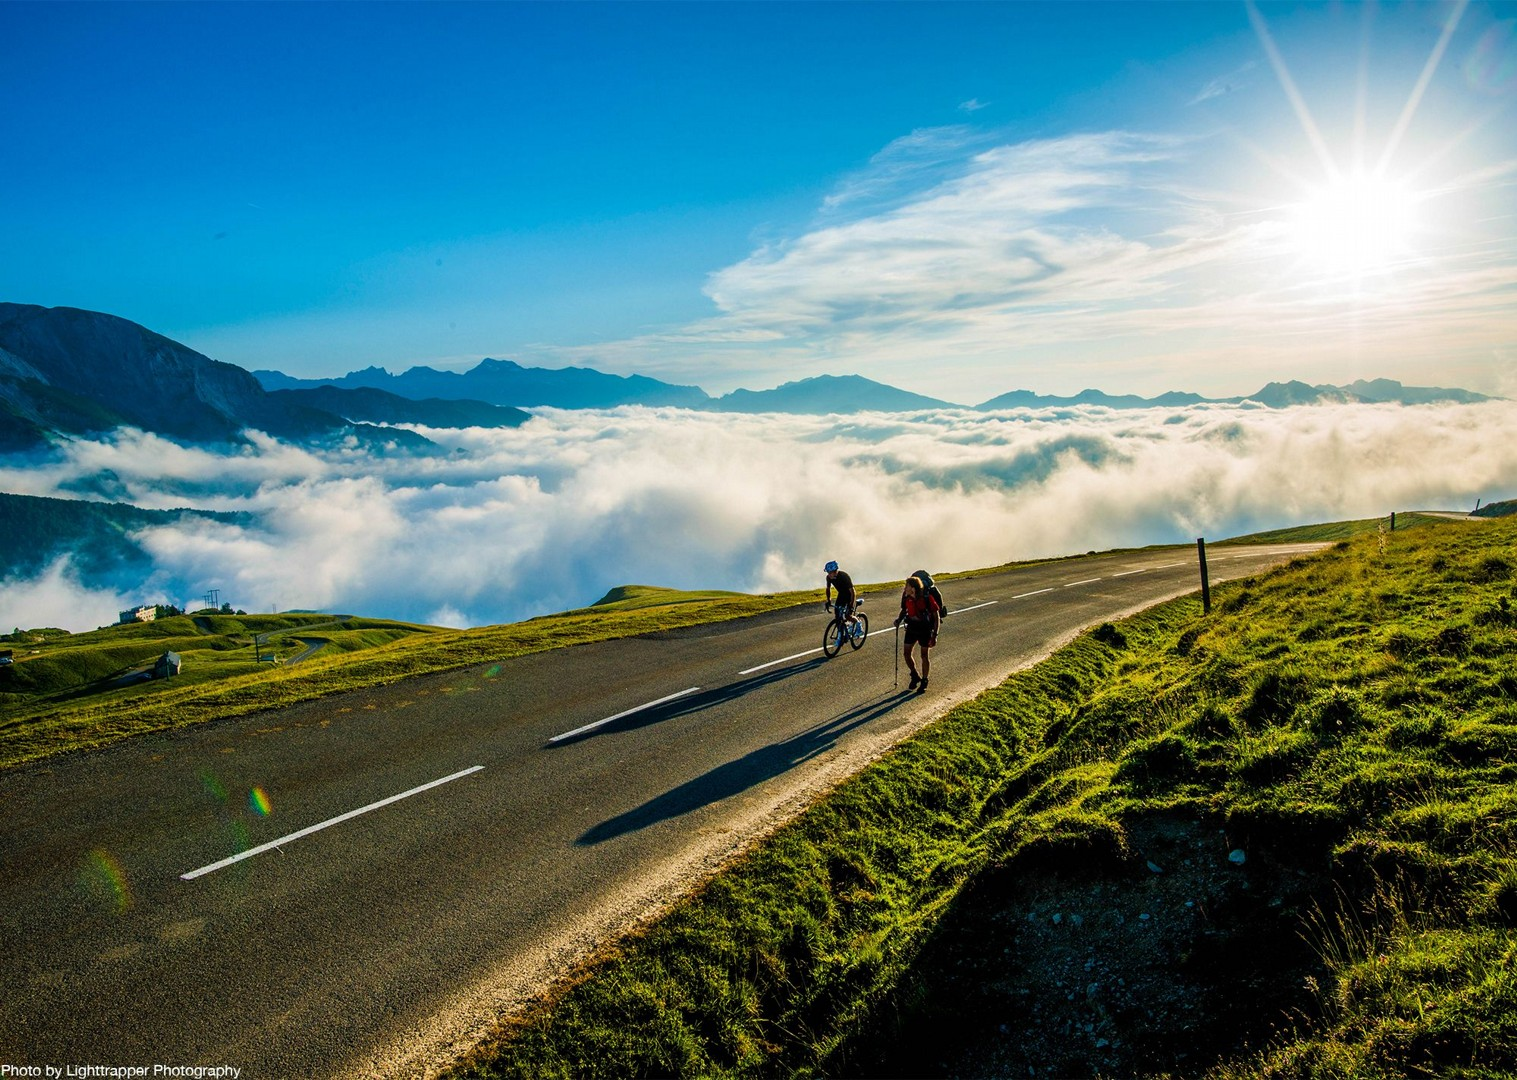 pyrenees-clouds-cycling-guided-road-holidays-saddle-skedaddle-biking.jpg - France - Trans Pyrenees Challenge - Guided Road Cycling Holiday - Road Cycling